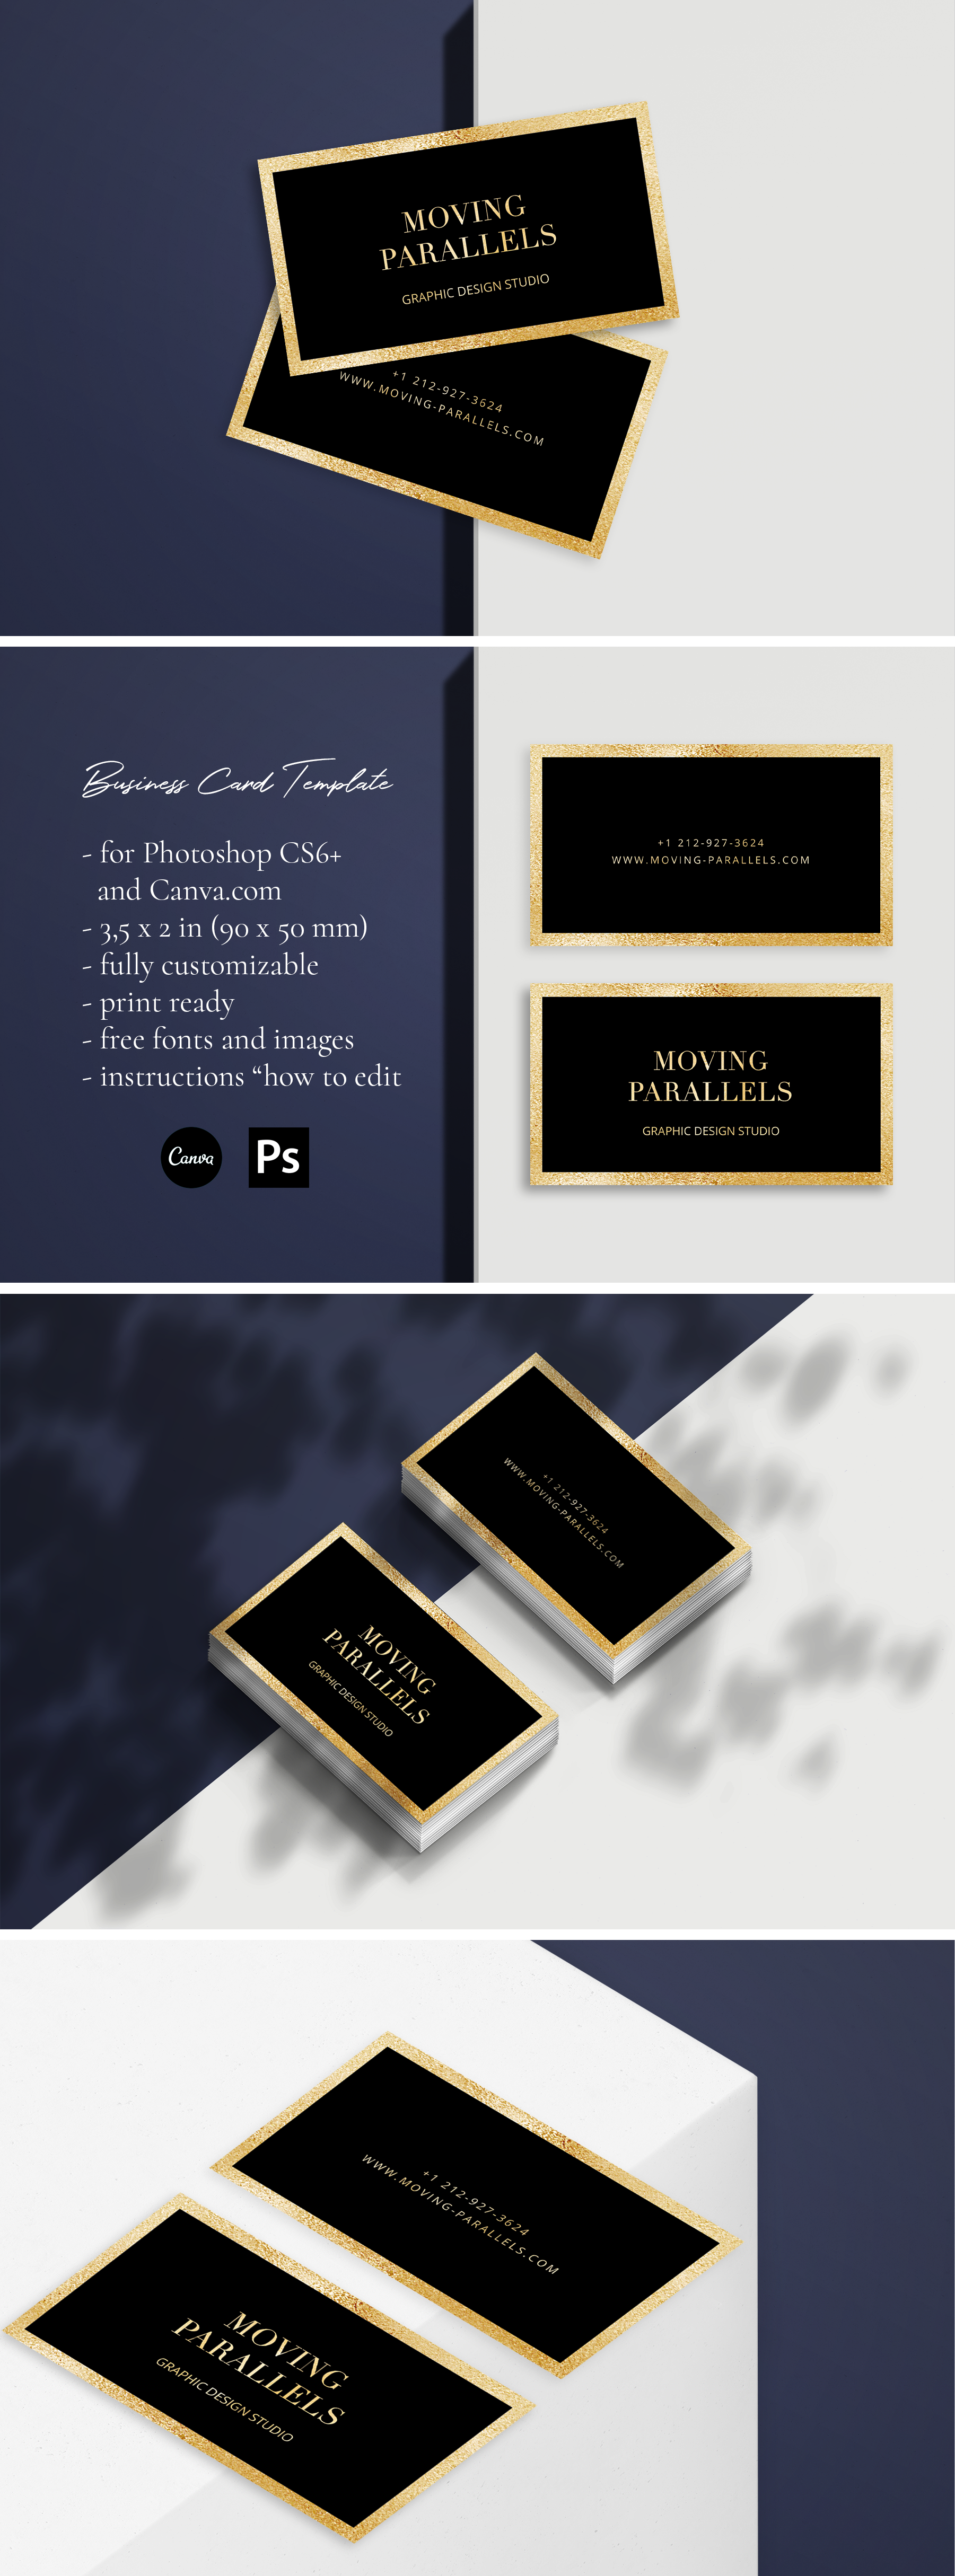 Elegant Gold Business Card 9 In 2020 Gold Business Card Business Card Design Business Card Template